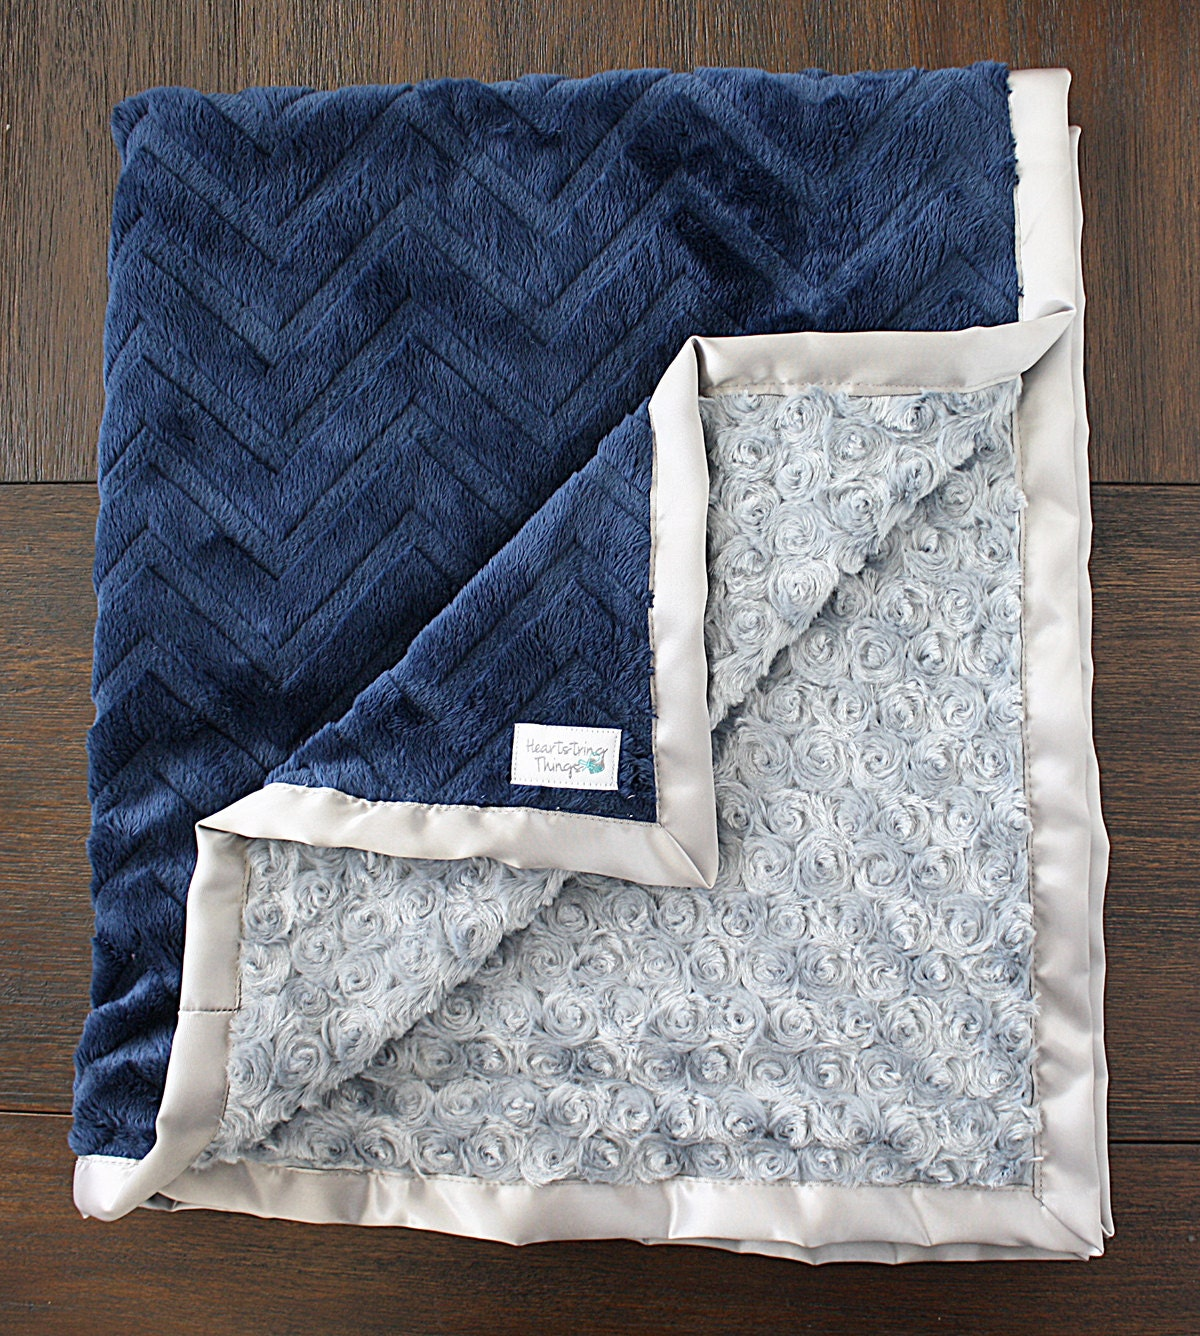 Sears has baby blankets for your little one. You can find baby boy blankets and girl blankets for newborns at Sears.